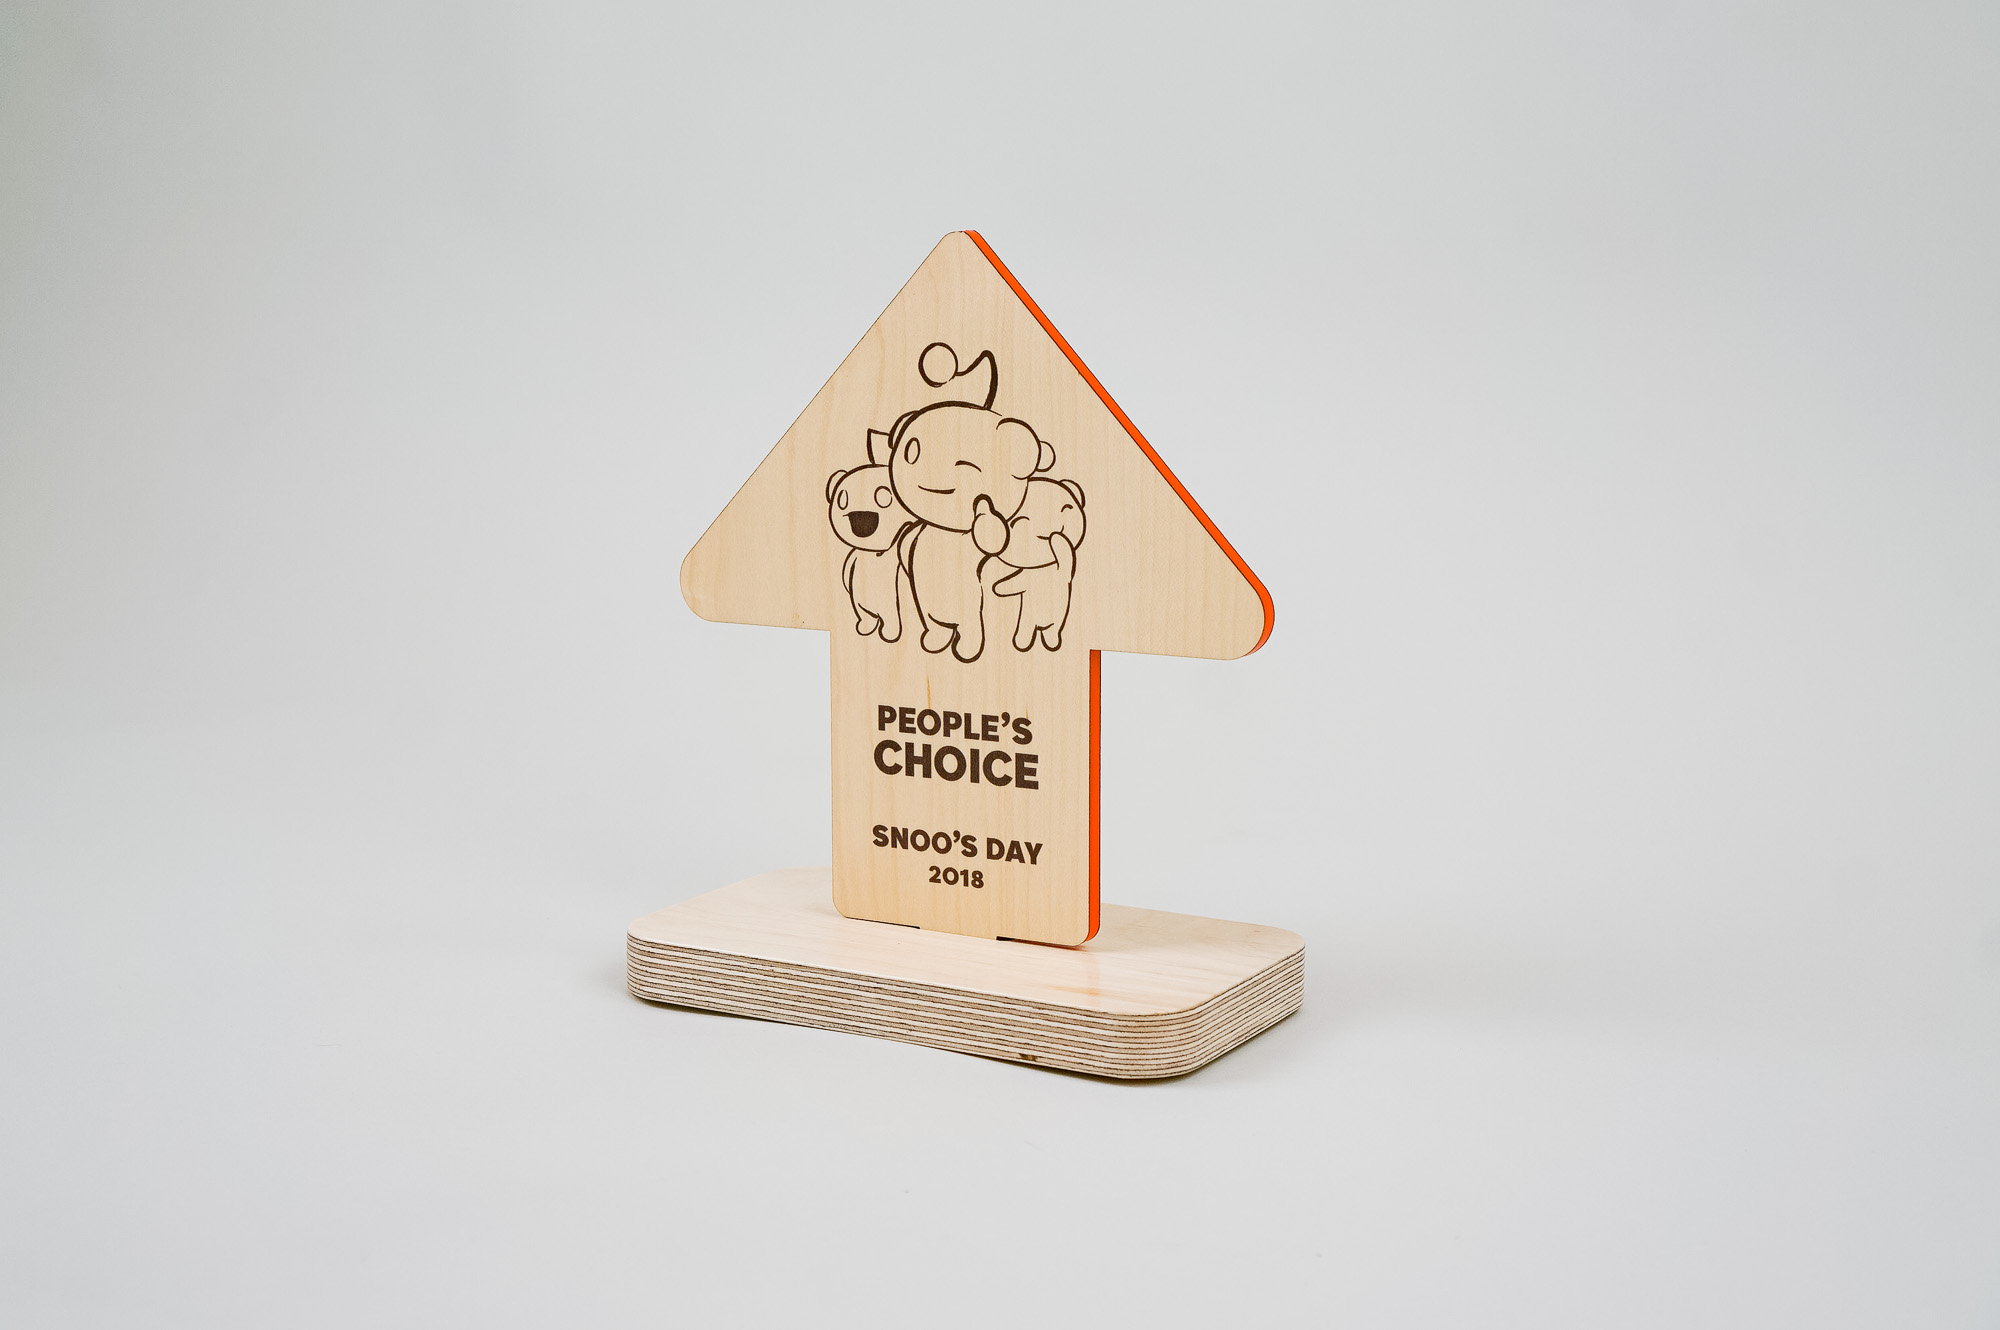 Custom wood arrow shaped 2018 team awards for Reddit, an American social news aggregation, web content rating, and discussion website.